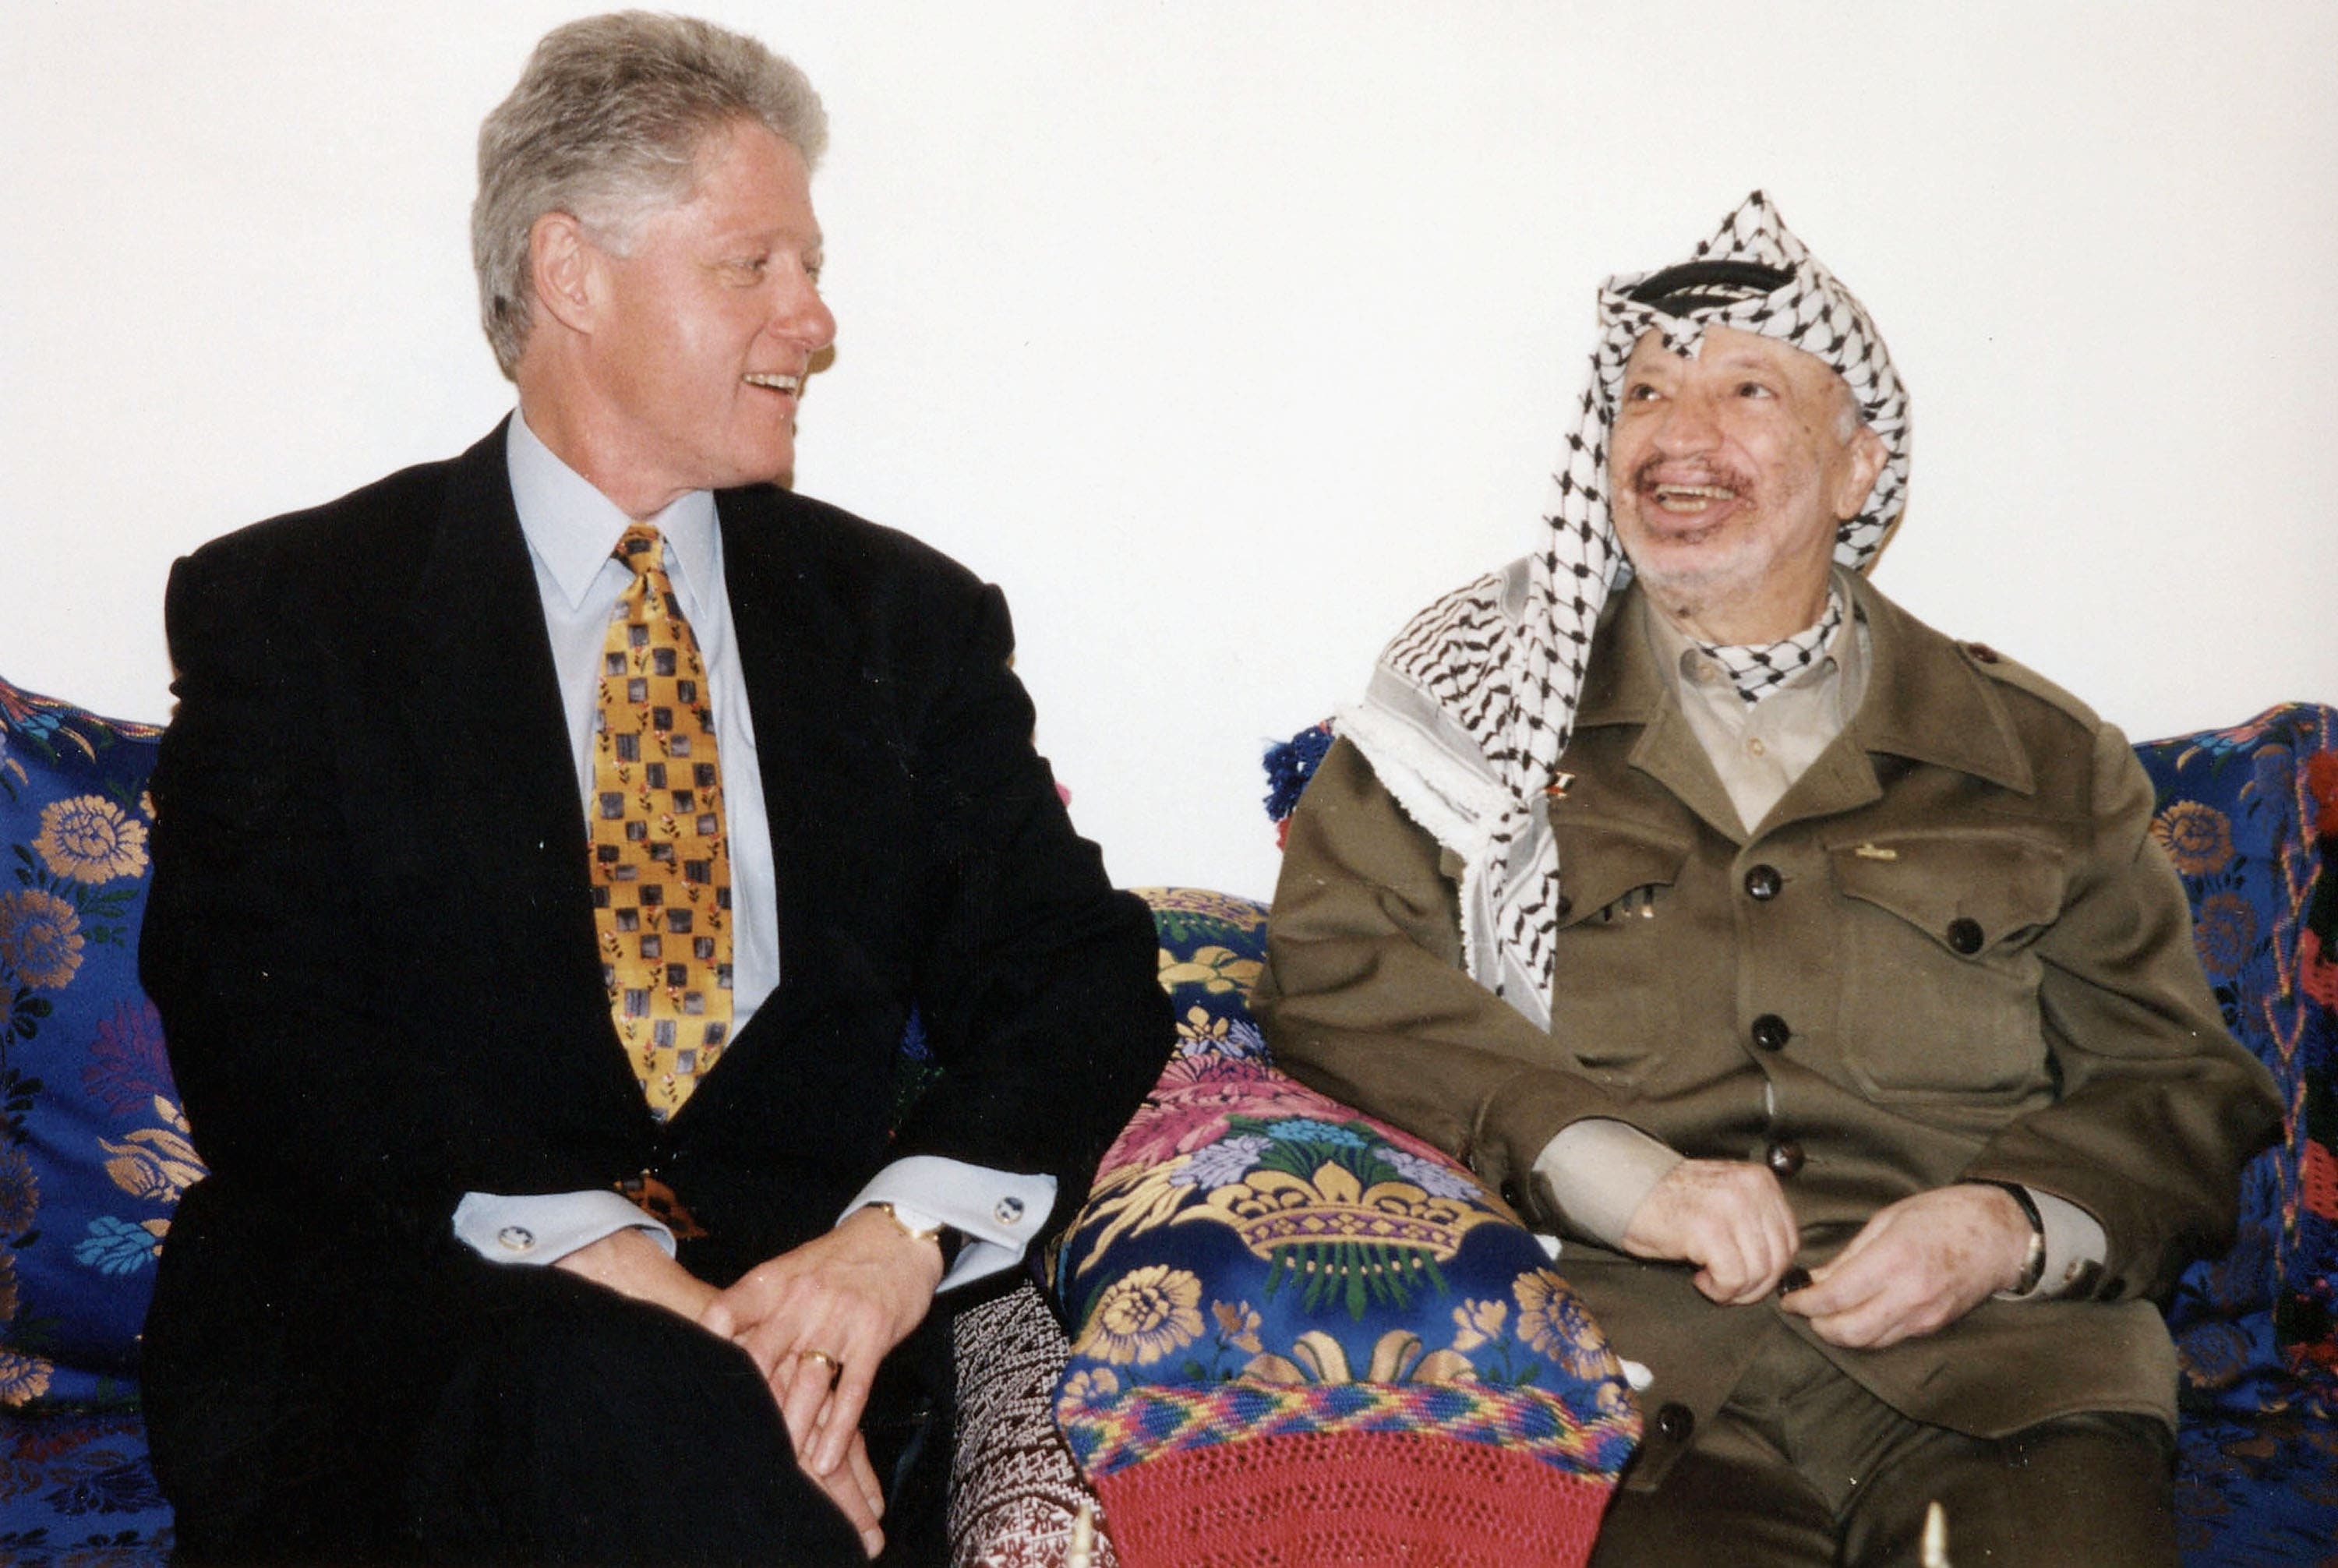 Bill Clinton made some supposed roads to that elusive peace, stalling on statehood via Osla.